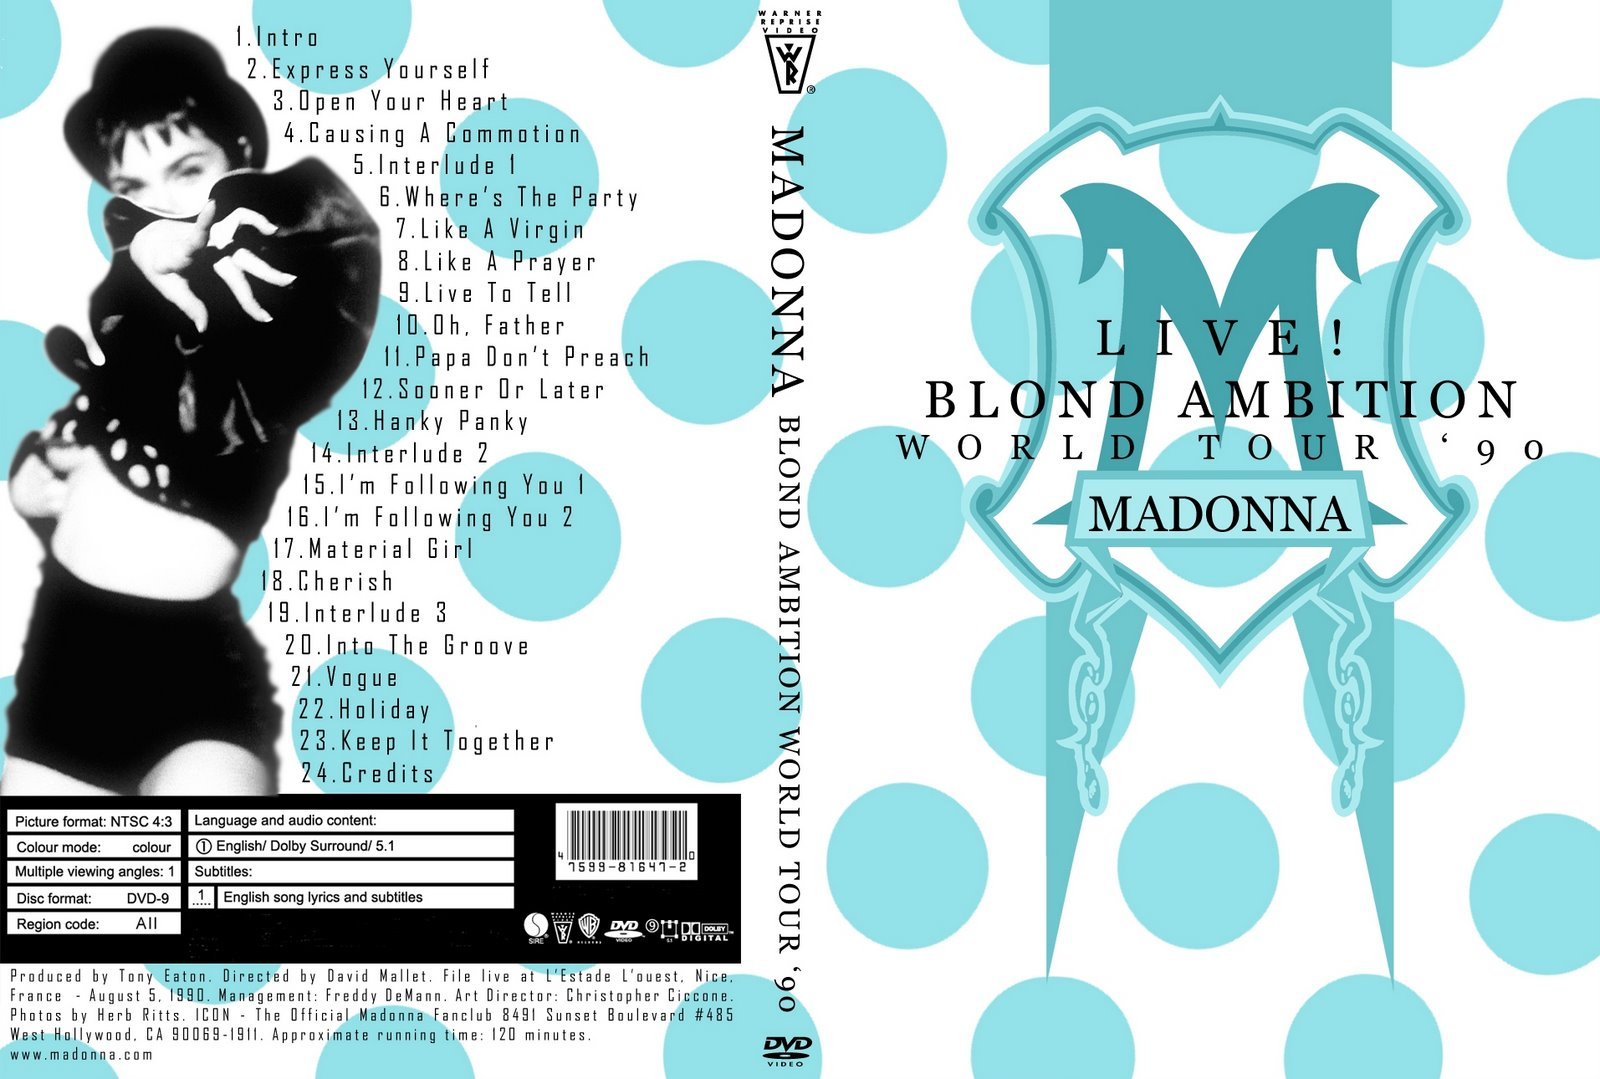 Audio from madonna's tours.